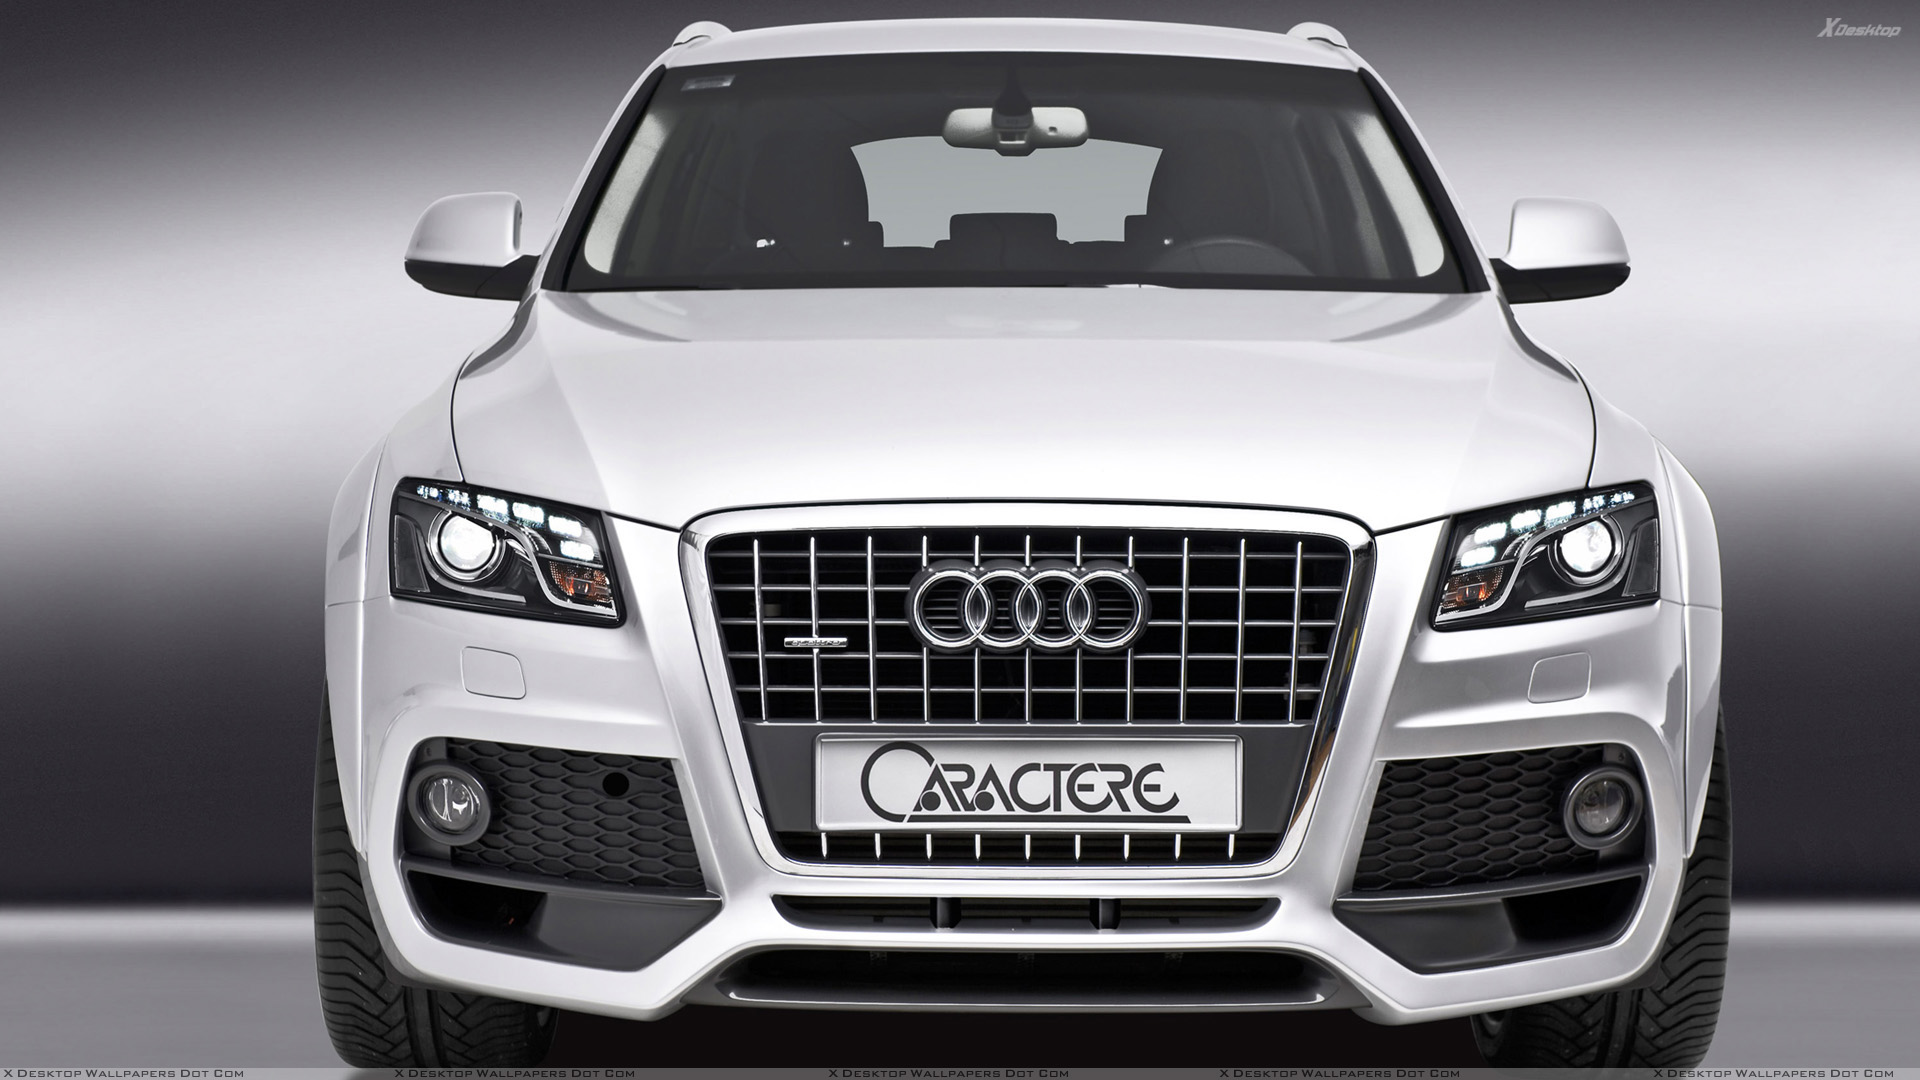 1920x1080 - Audi Q5 Wallpapers 16